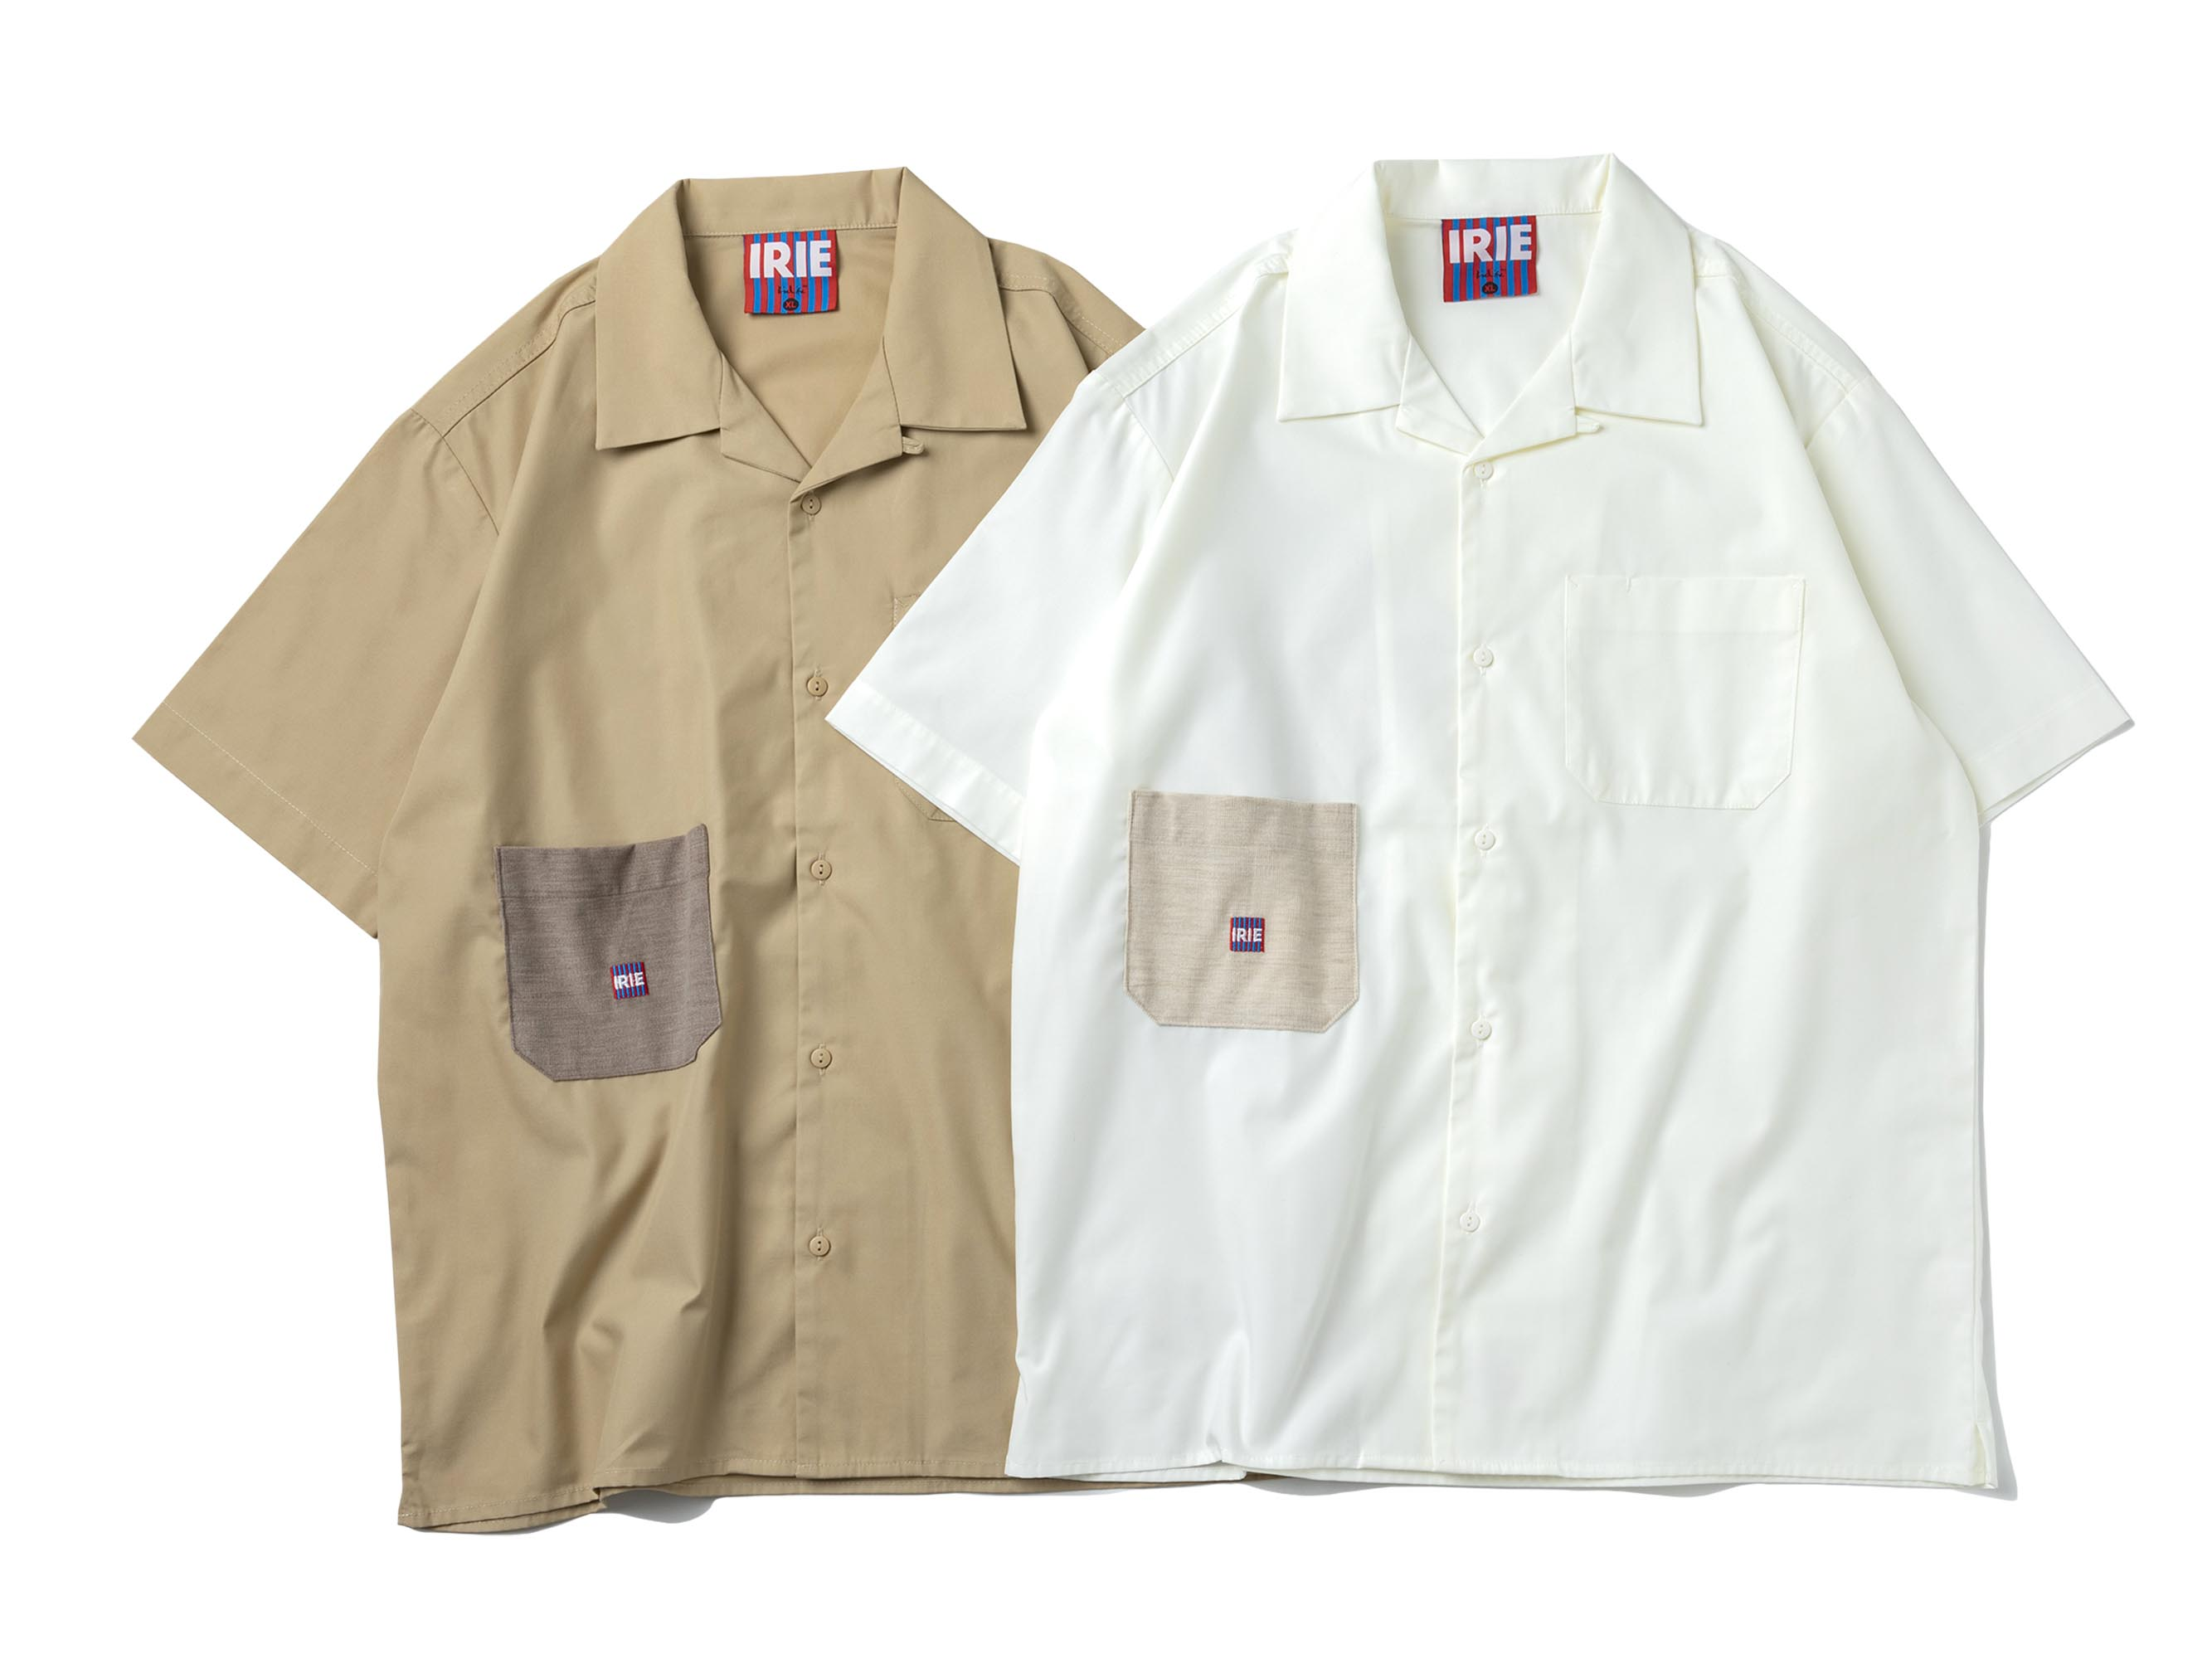 CORDUROY POCKET S/S SHIRT - IRIE by irielife